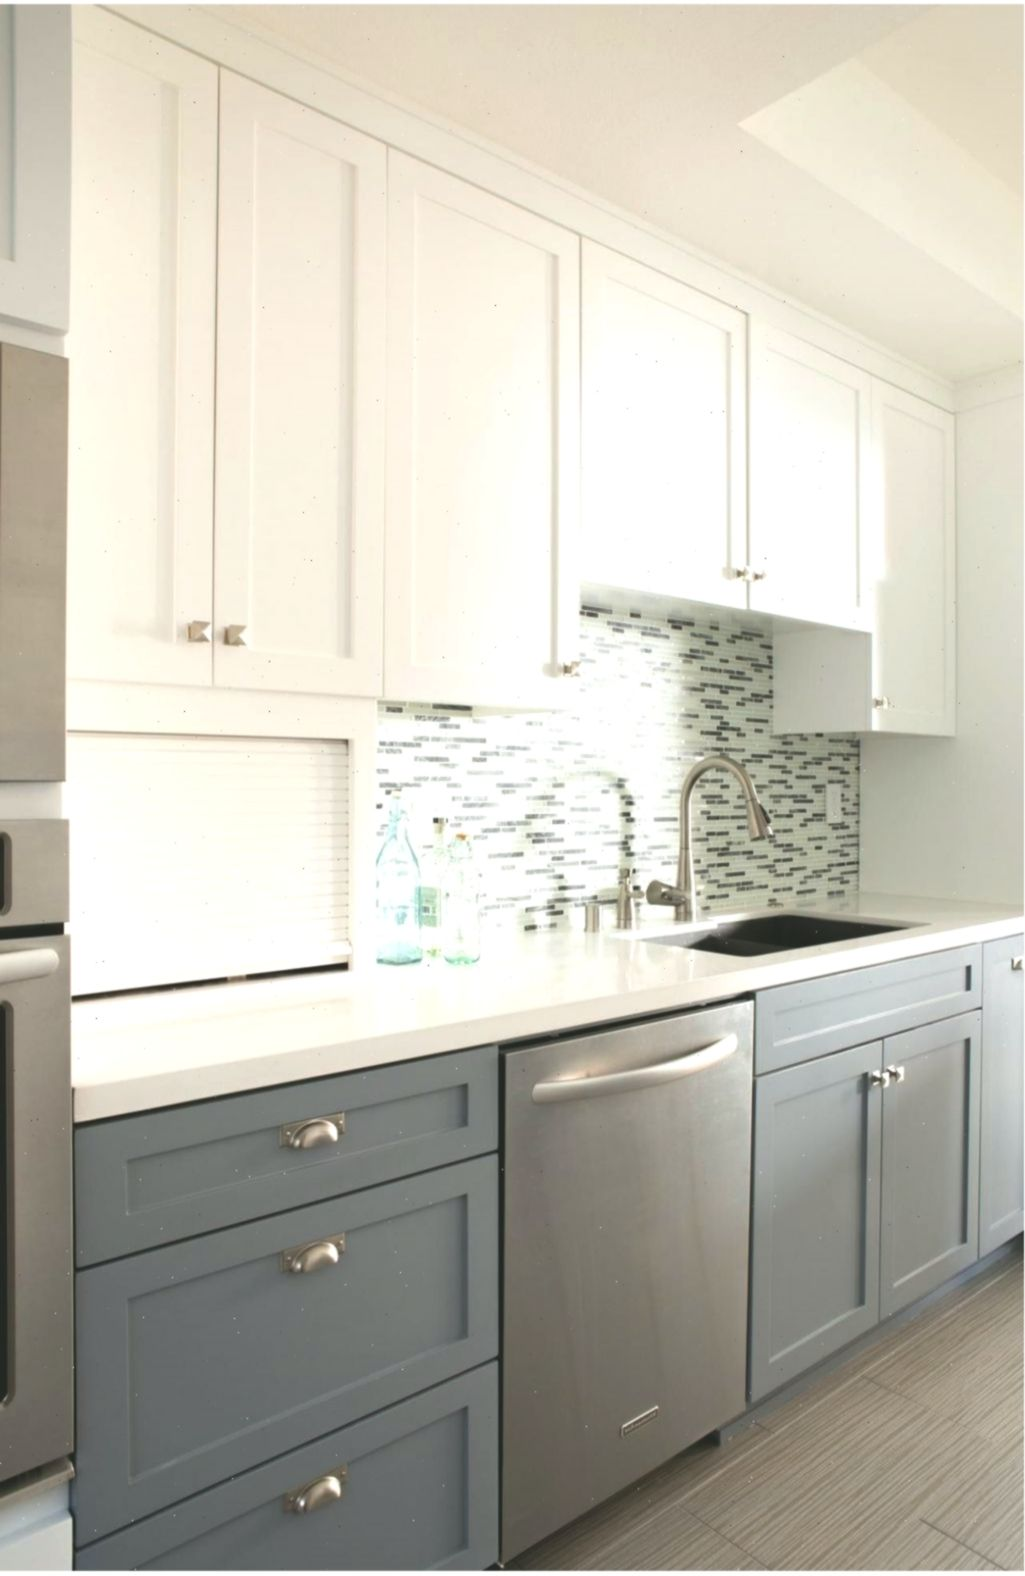 43 Modern Paint Colors Ideas For Kitchen Küchendesign